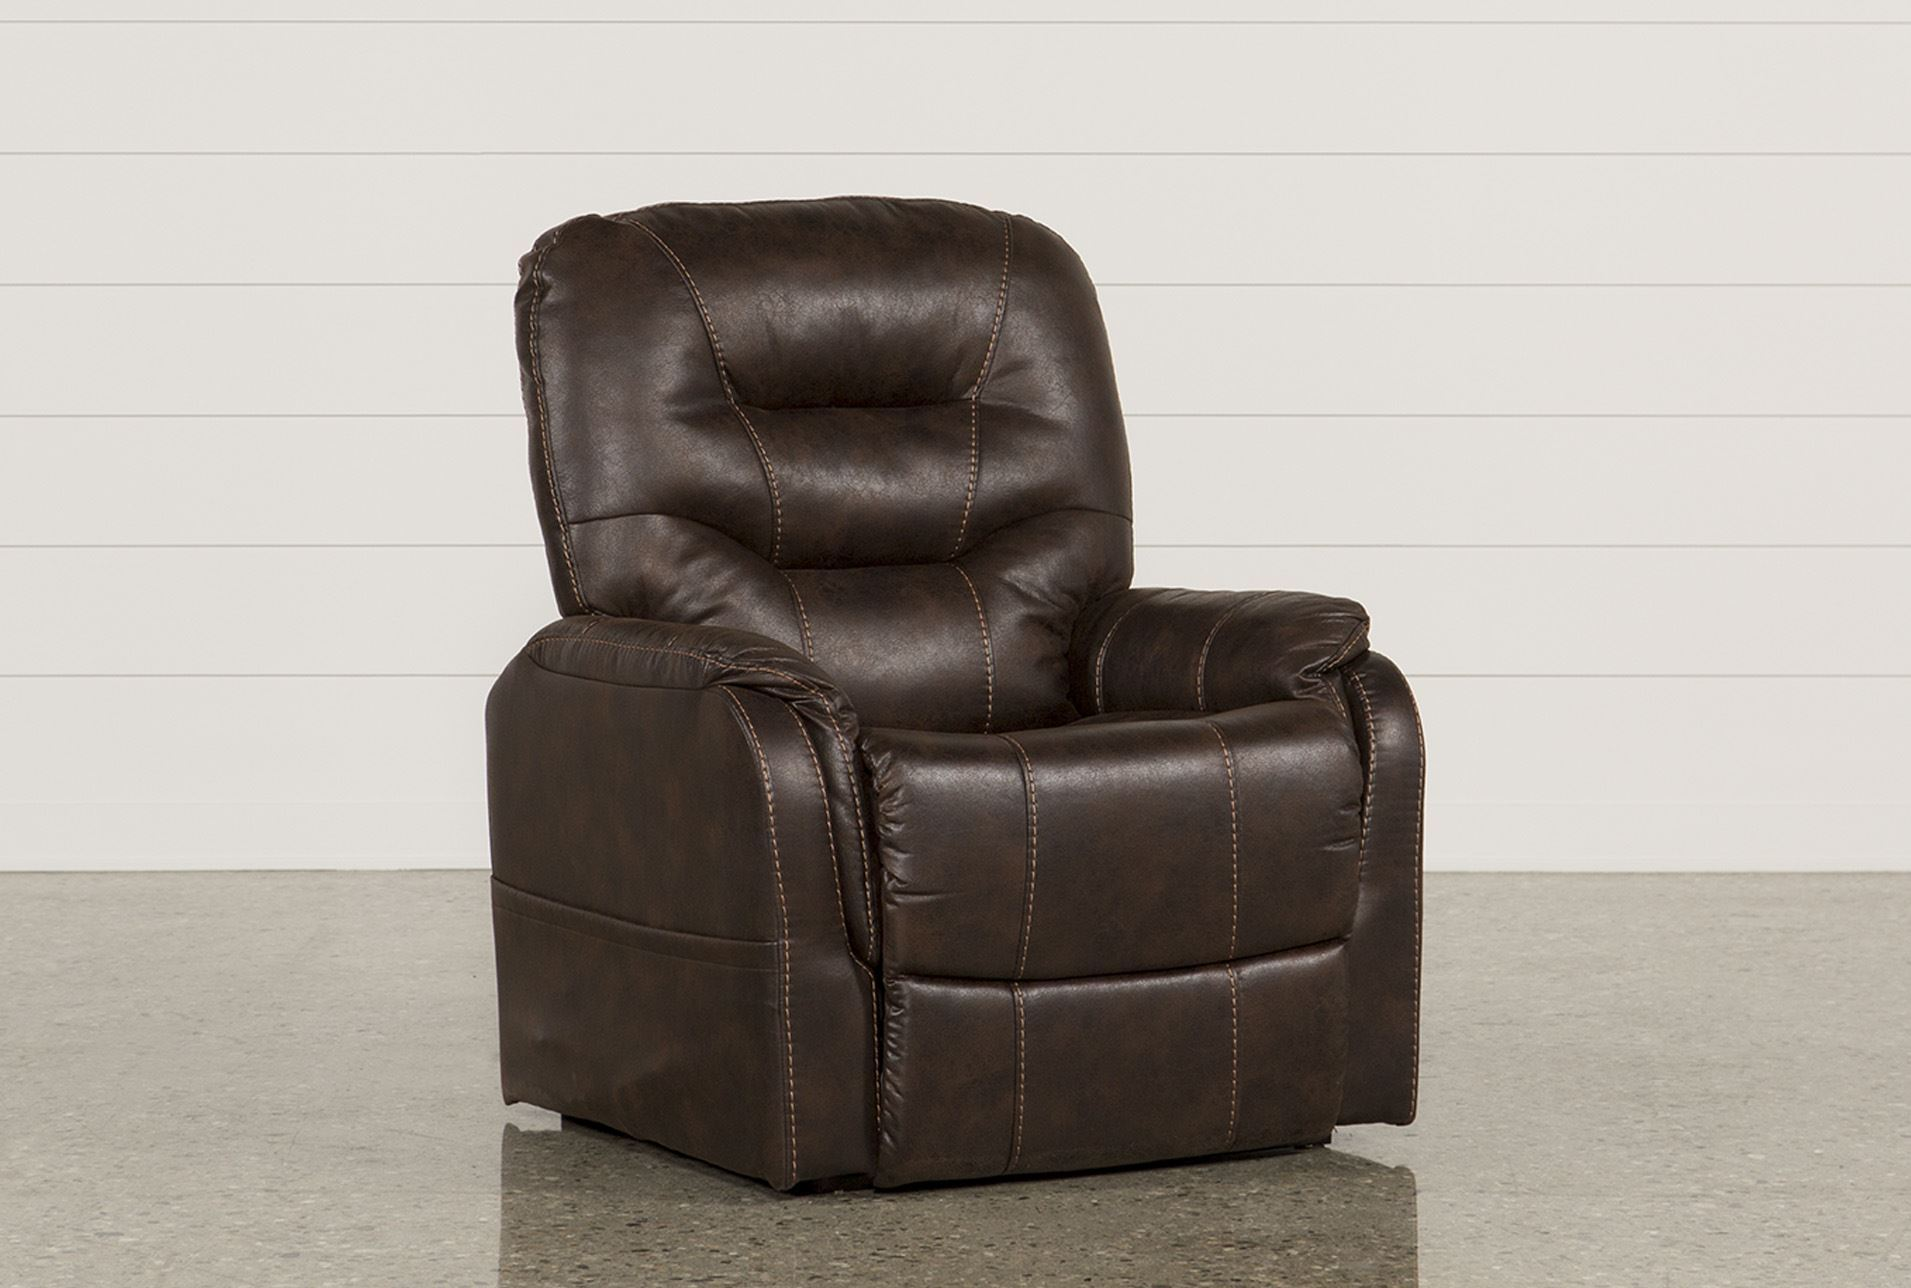 Brantly Walnut Power-Lift Chair - 360 & Brantly Walnut Power-Lift Chair | Living Spaces